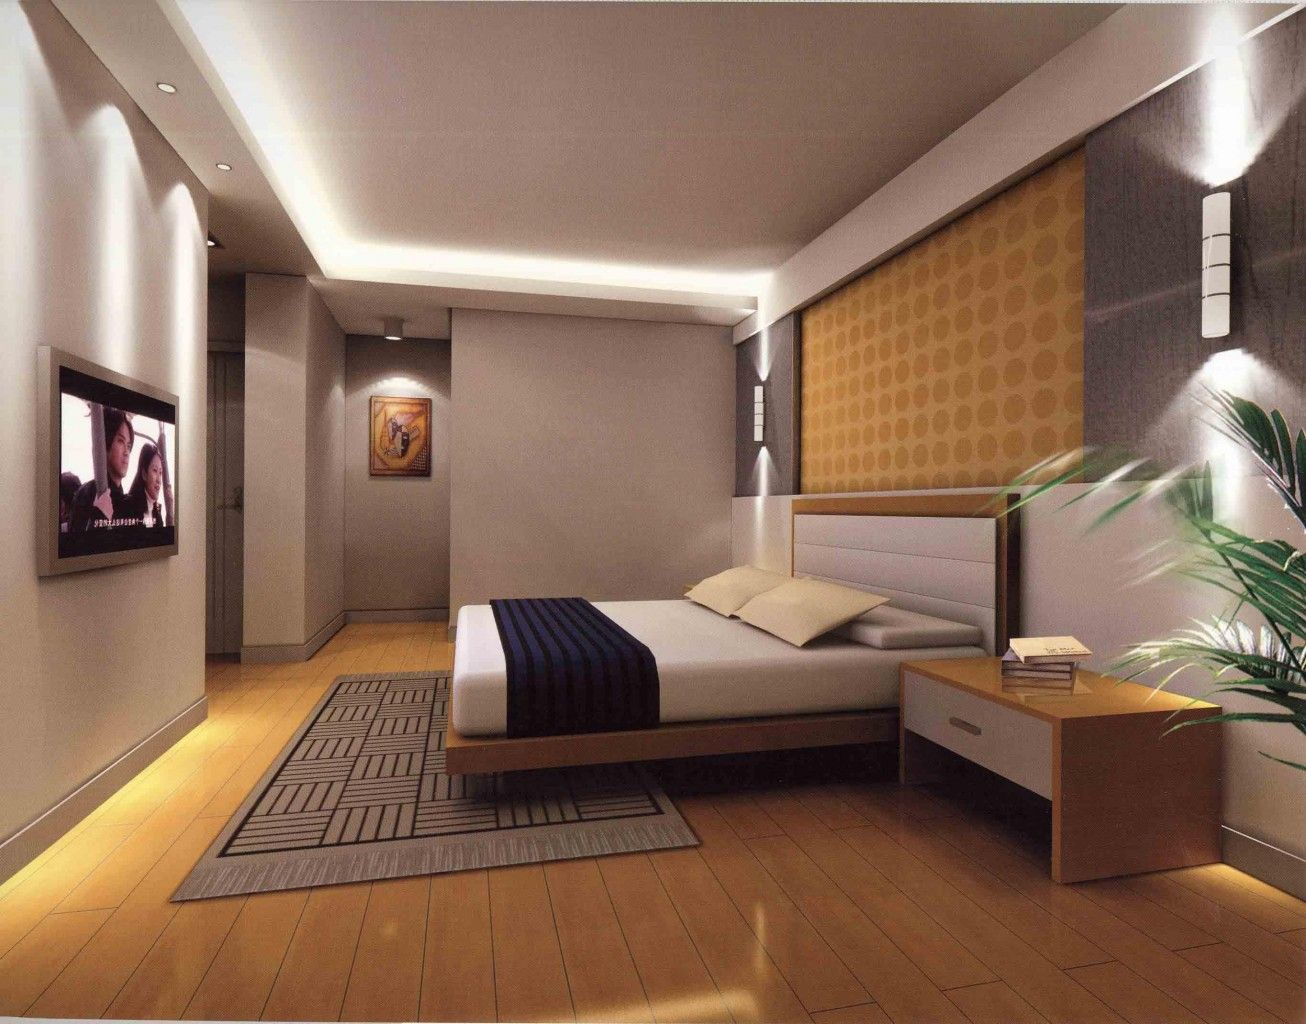 Modern master bedroom ceiling designs - Modern Elegant Master Bedroom Decorating Ideas Awesome Master Bedroom Interior Design Ideas With Modern King Size